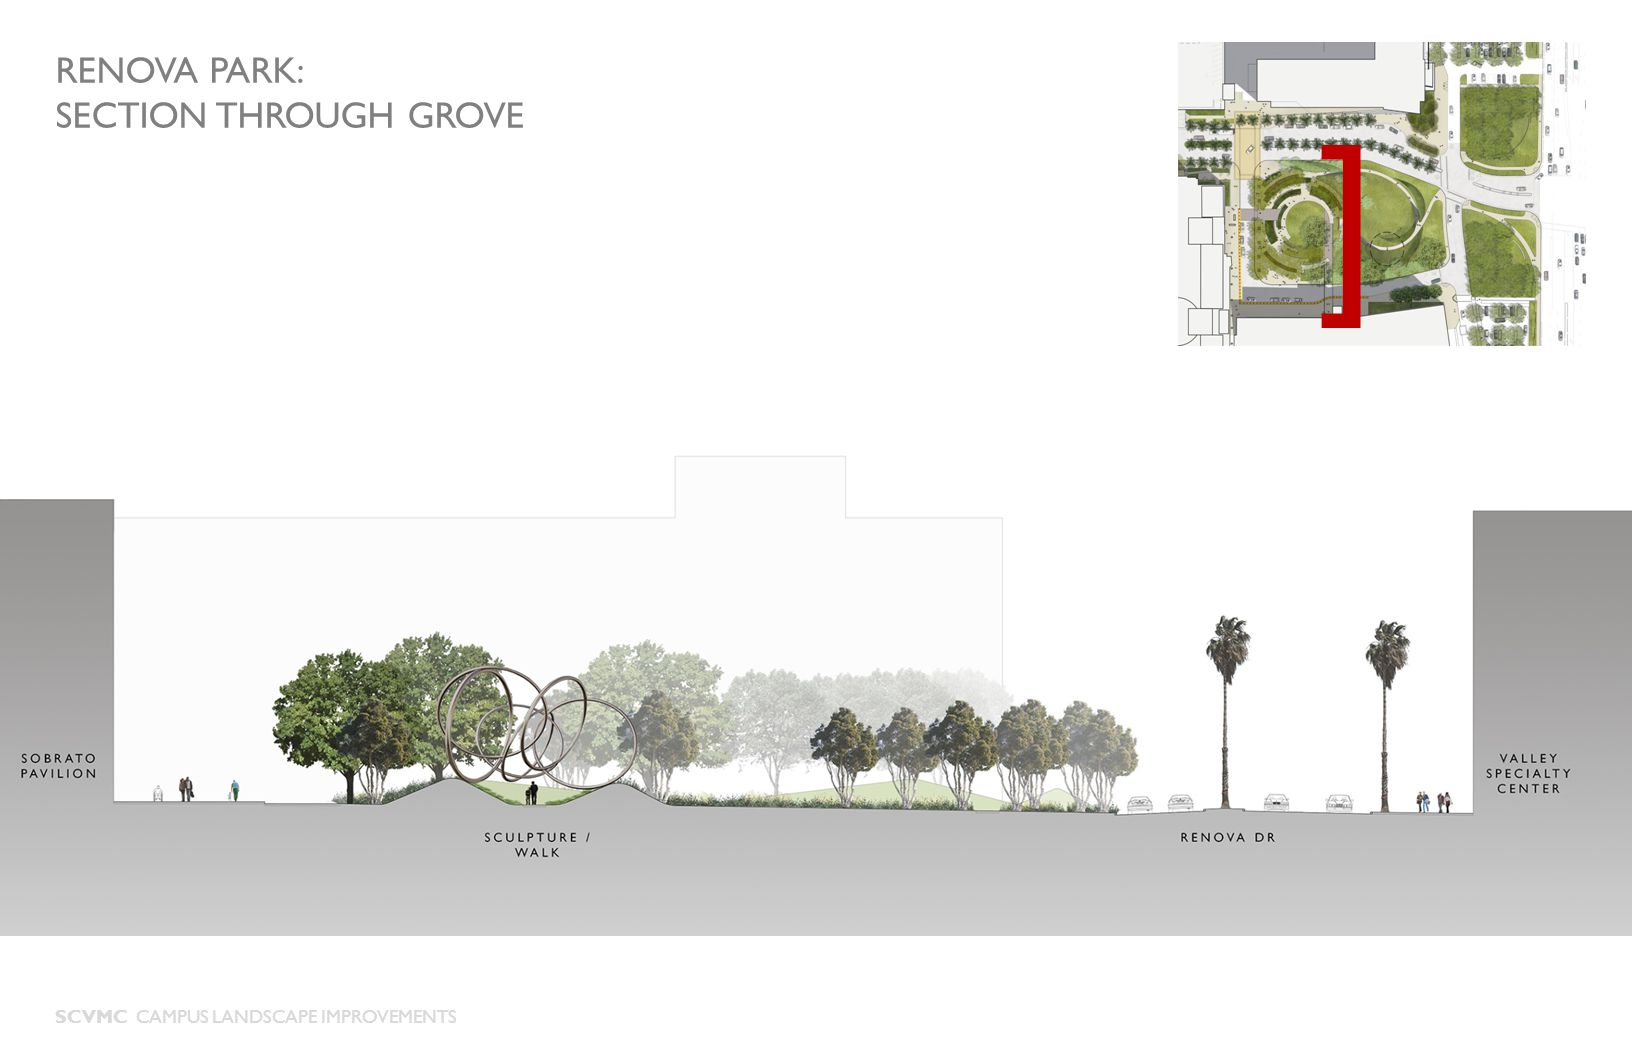 ] RENOVA PARK: SECTION THROUGH GROVE SCVMC CAMPUS LANDSCAPE IMPROVEMENTS